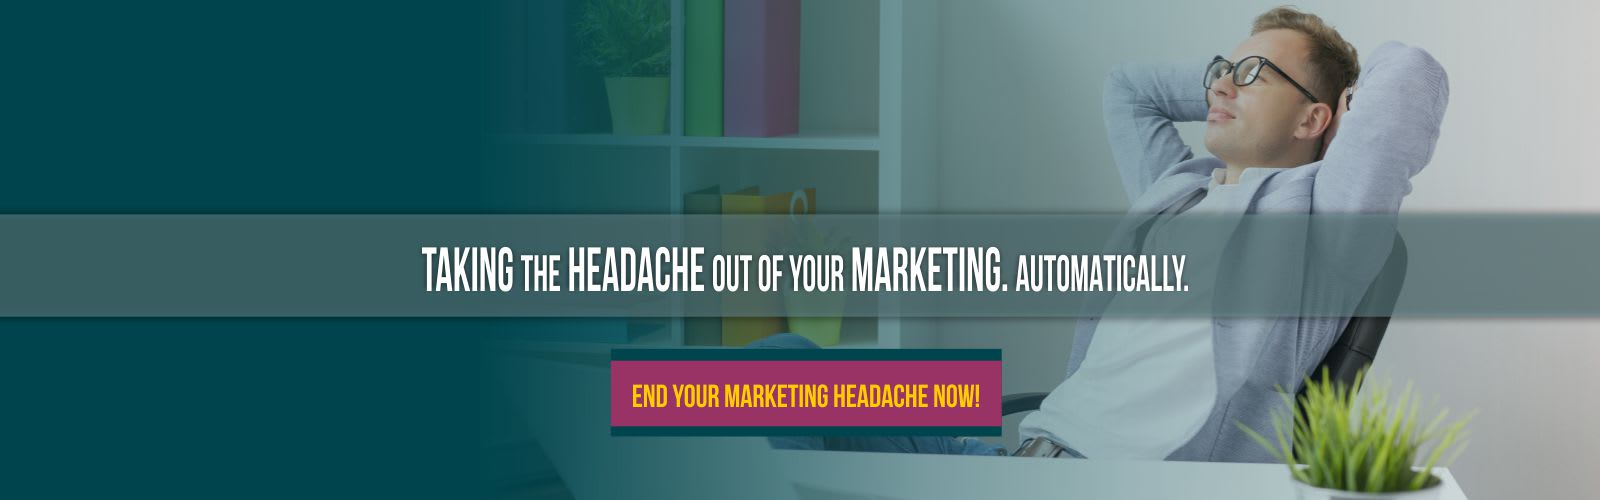 business man with no marketing headaches    fonthill